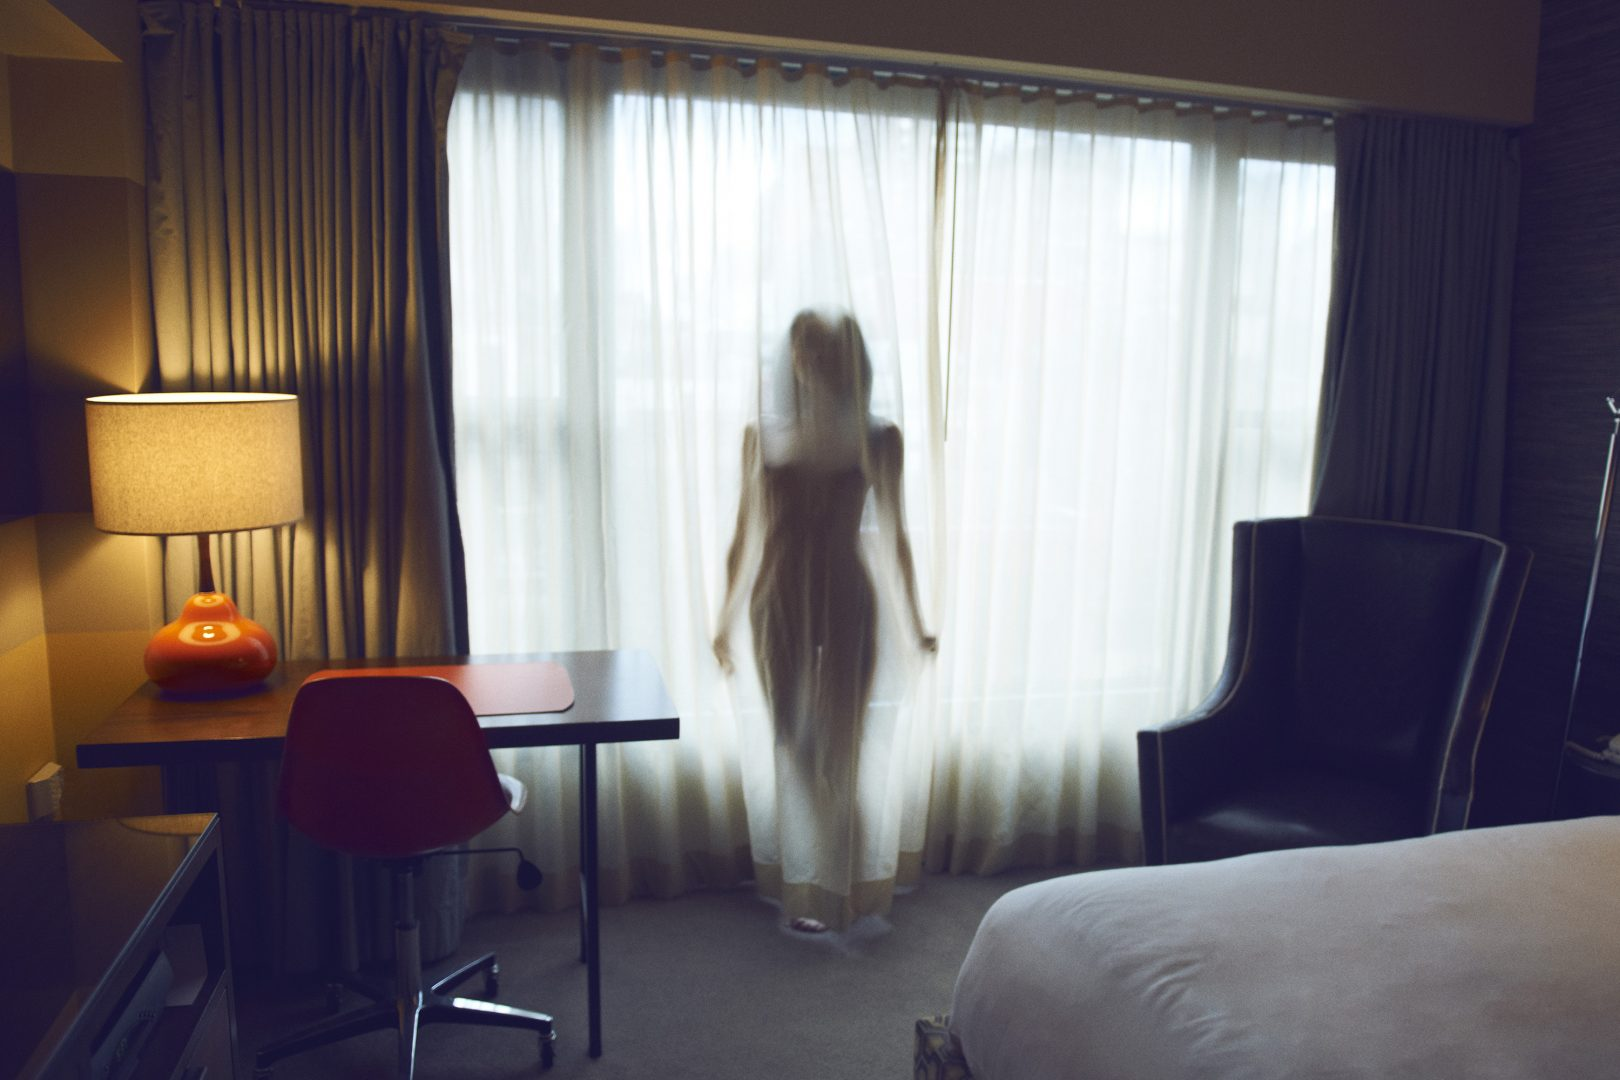 Naked girl behind curtain